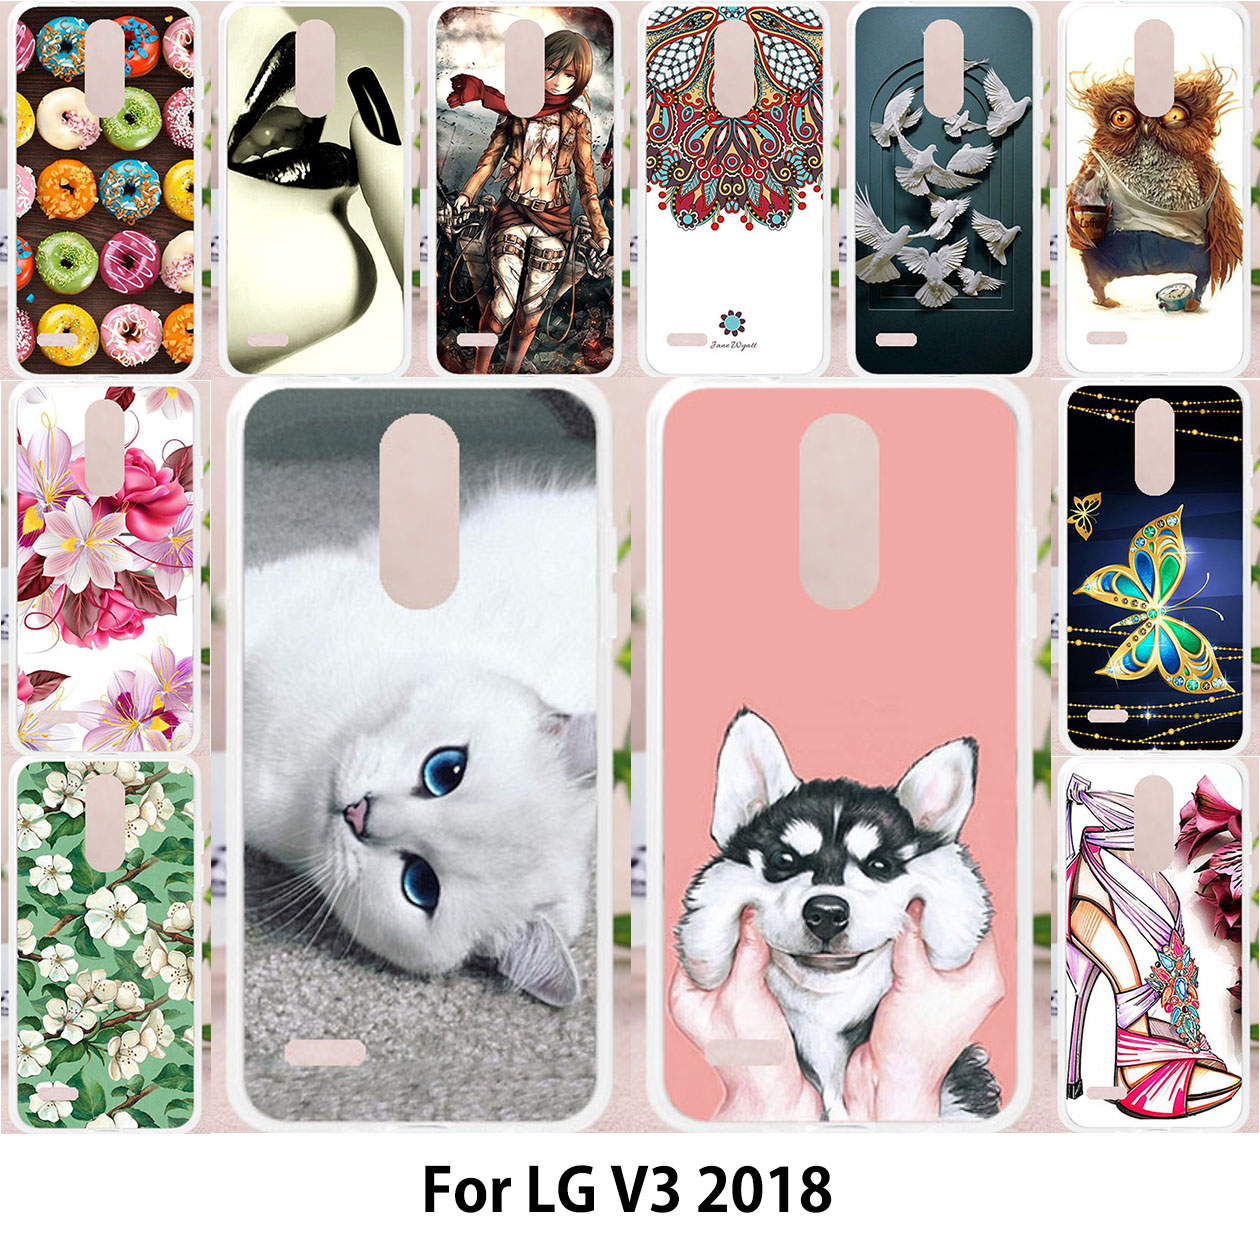 TAOYUNXI For LG Aristo 2 LV3 2018 Metro PCS X210 case For LG Aristo 2 Cases  Silicone Soft Covers Painting Flower Cute Patterned